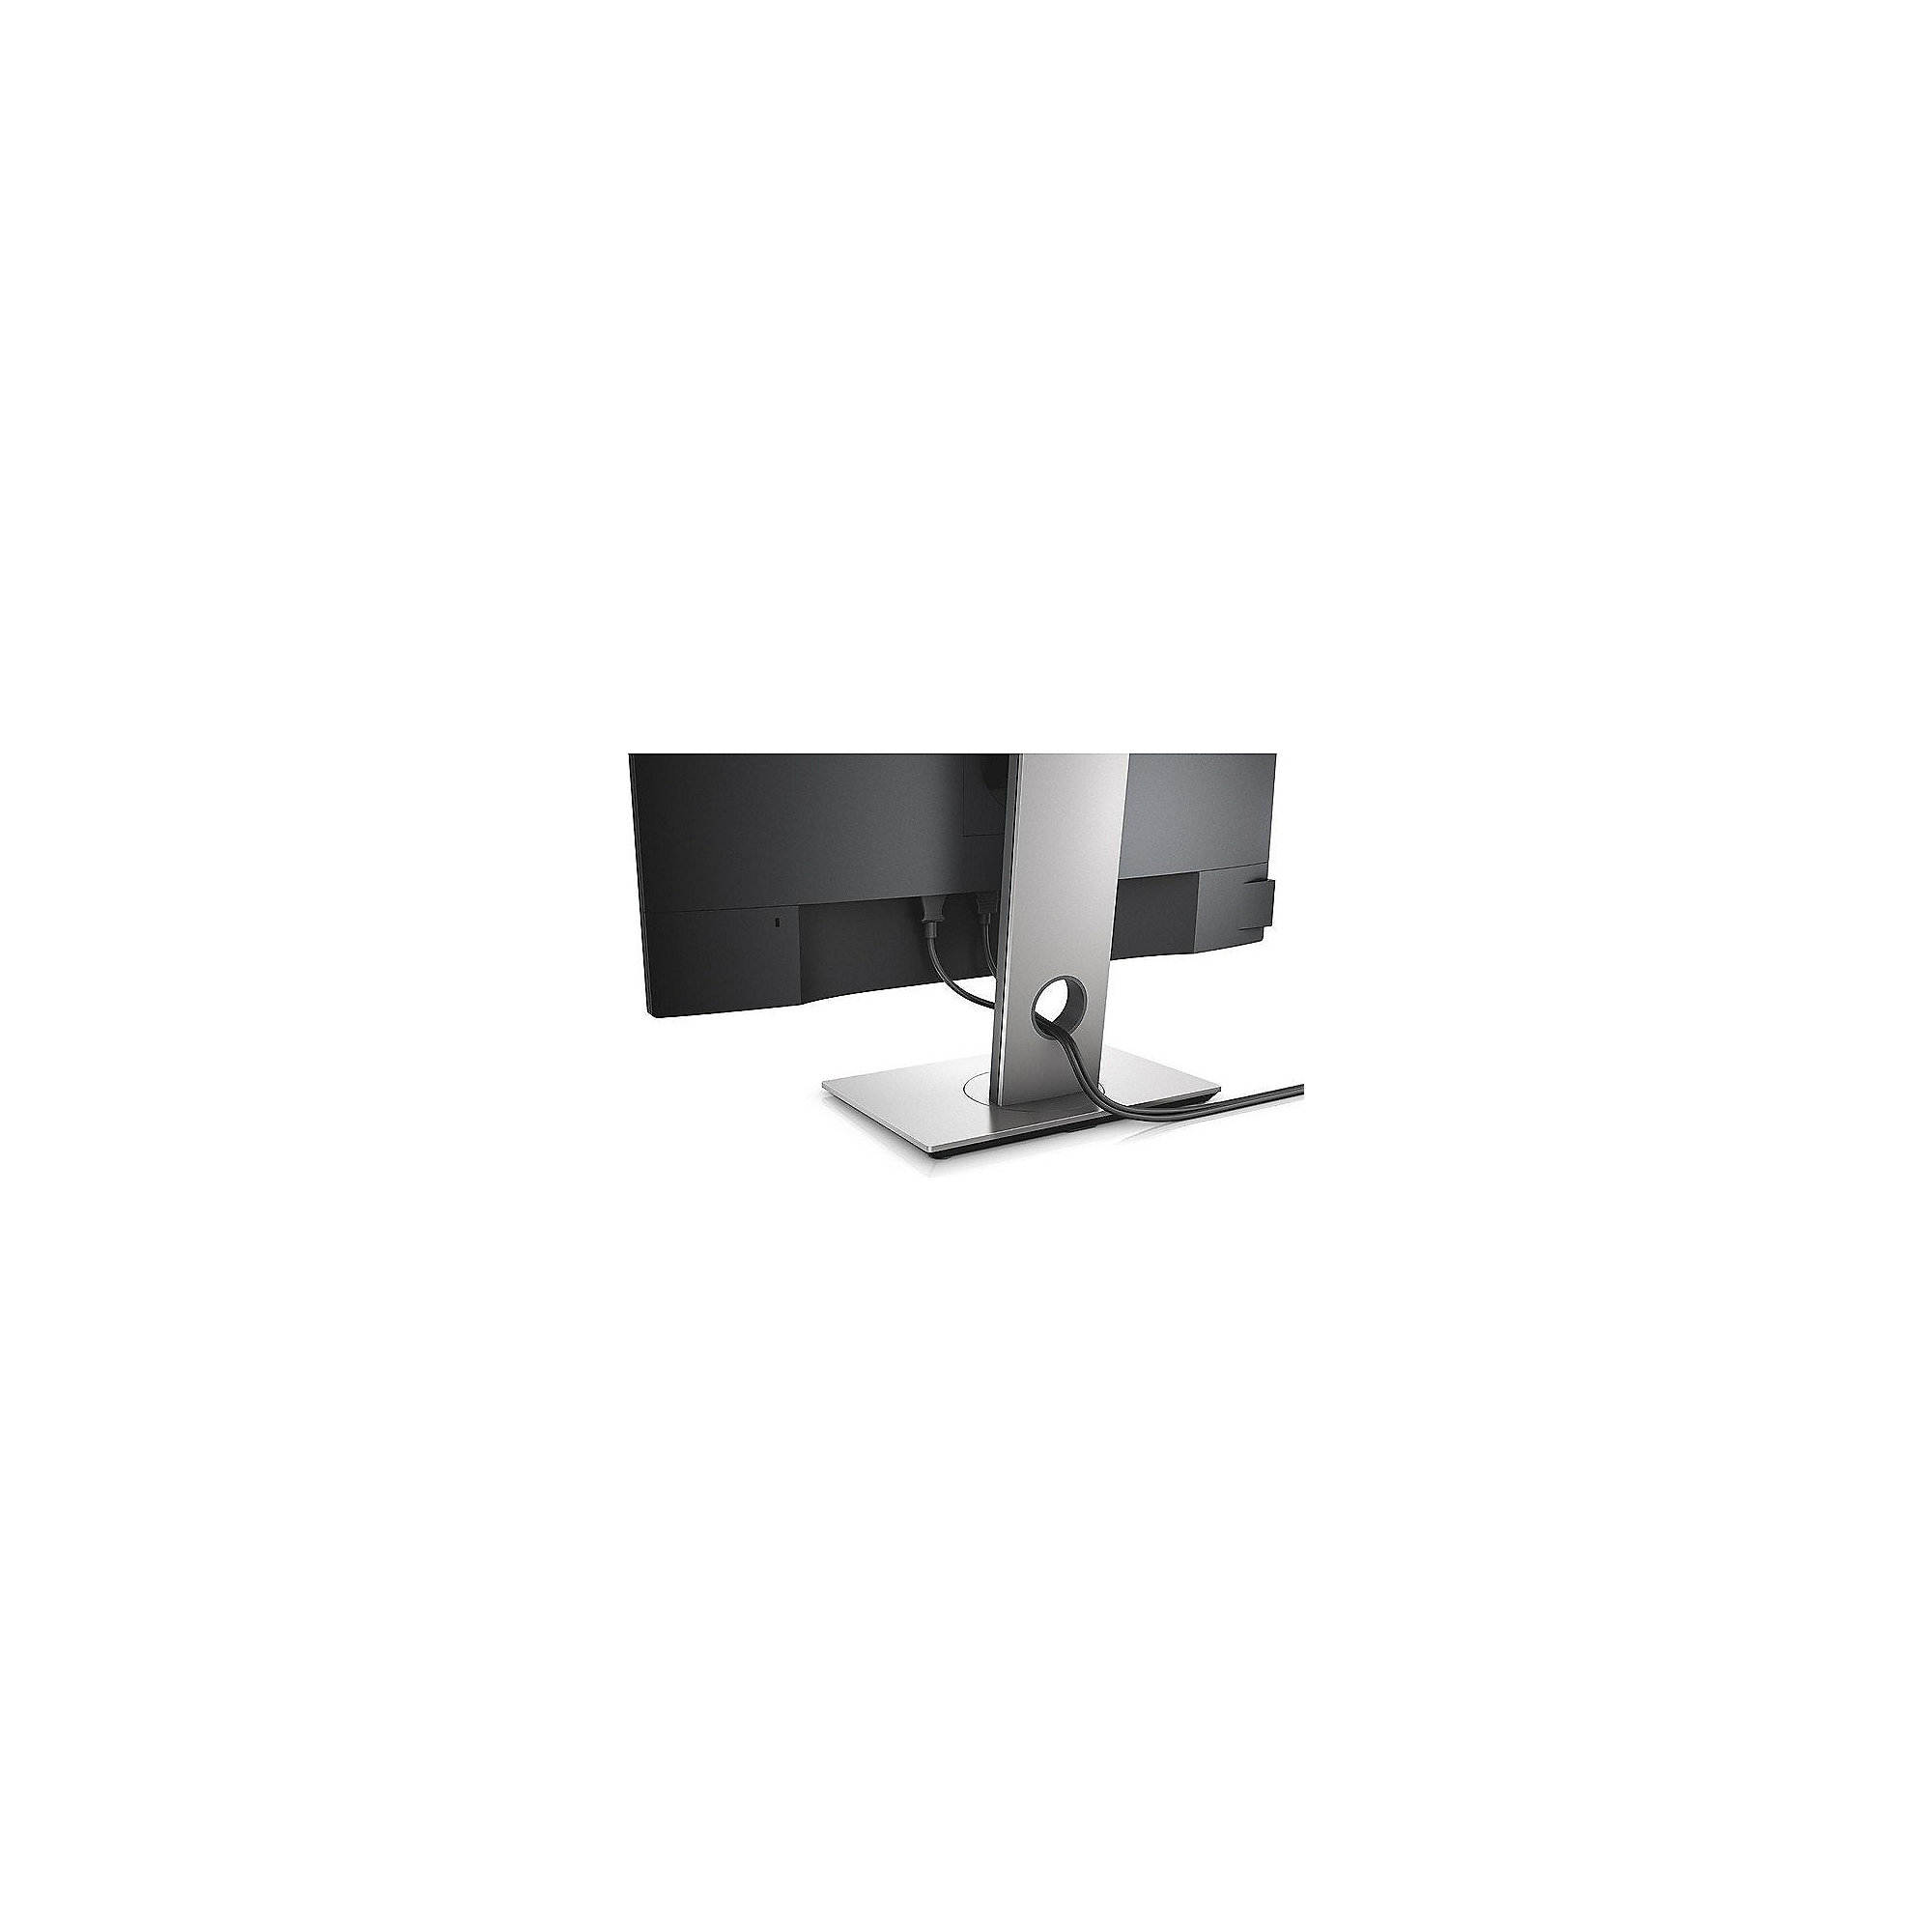 "DELL P2417H 60.5cm (24"") 16:9 DP/HDMI/VGA/USB 6ms LED"